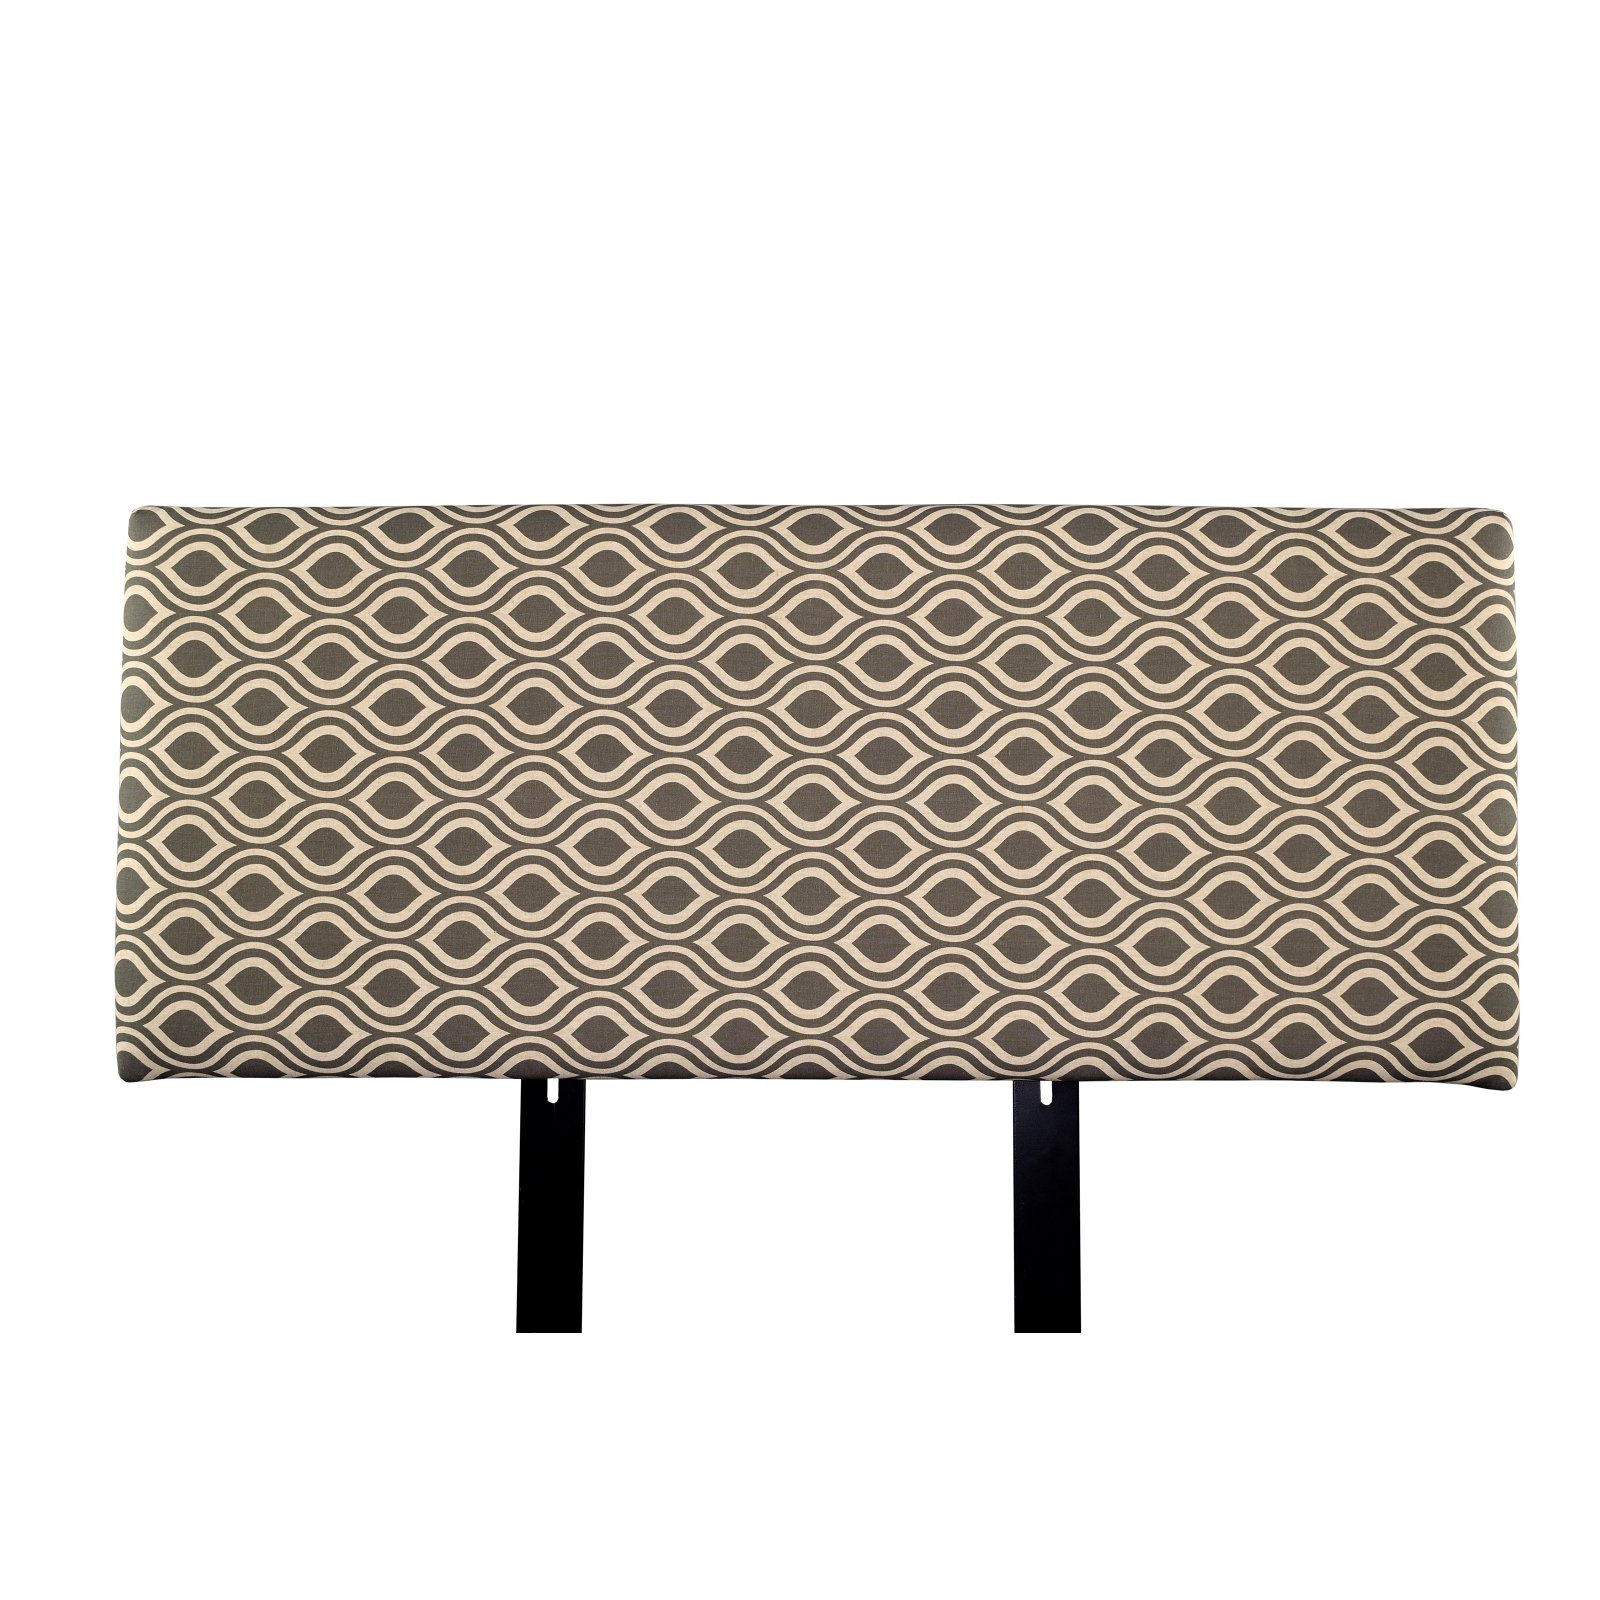 MJL Designs Nicole Upholstered Headboard